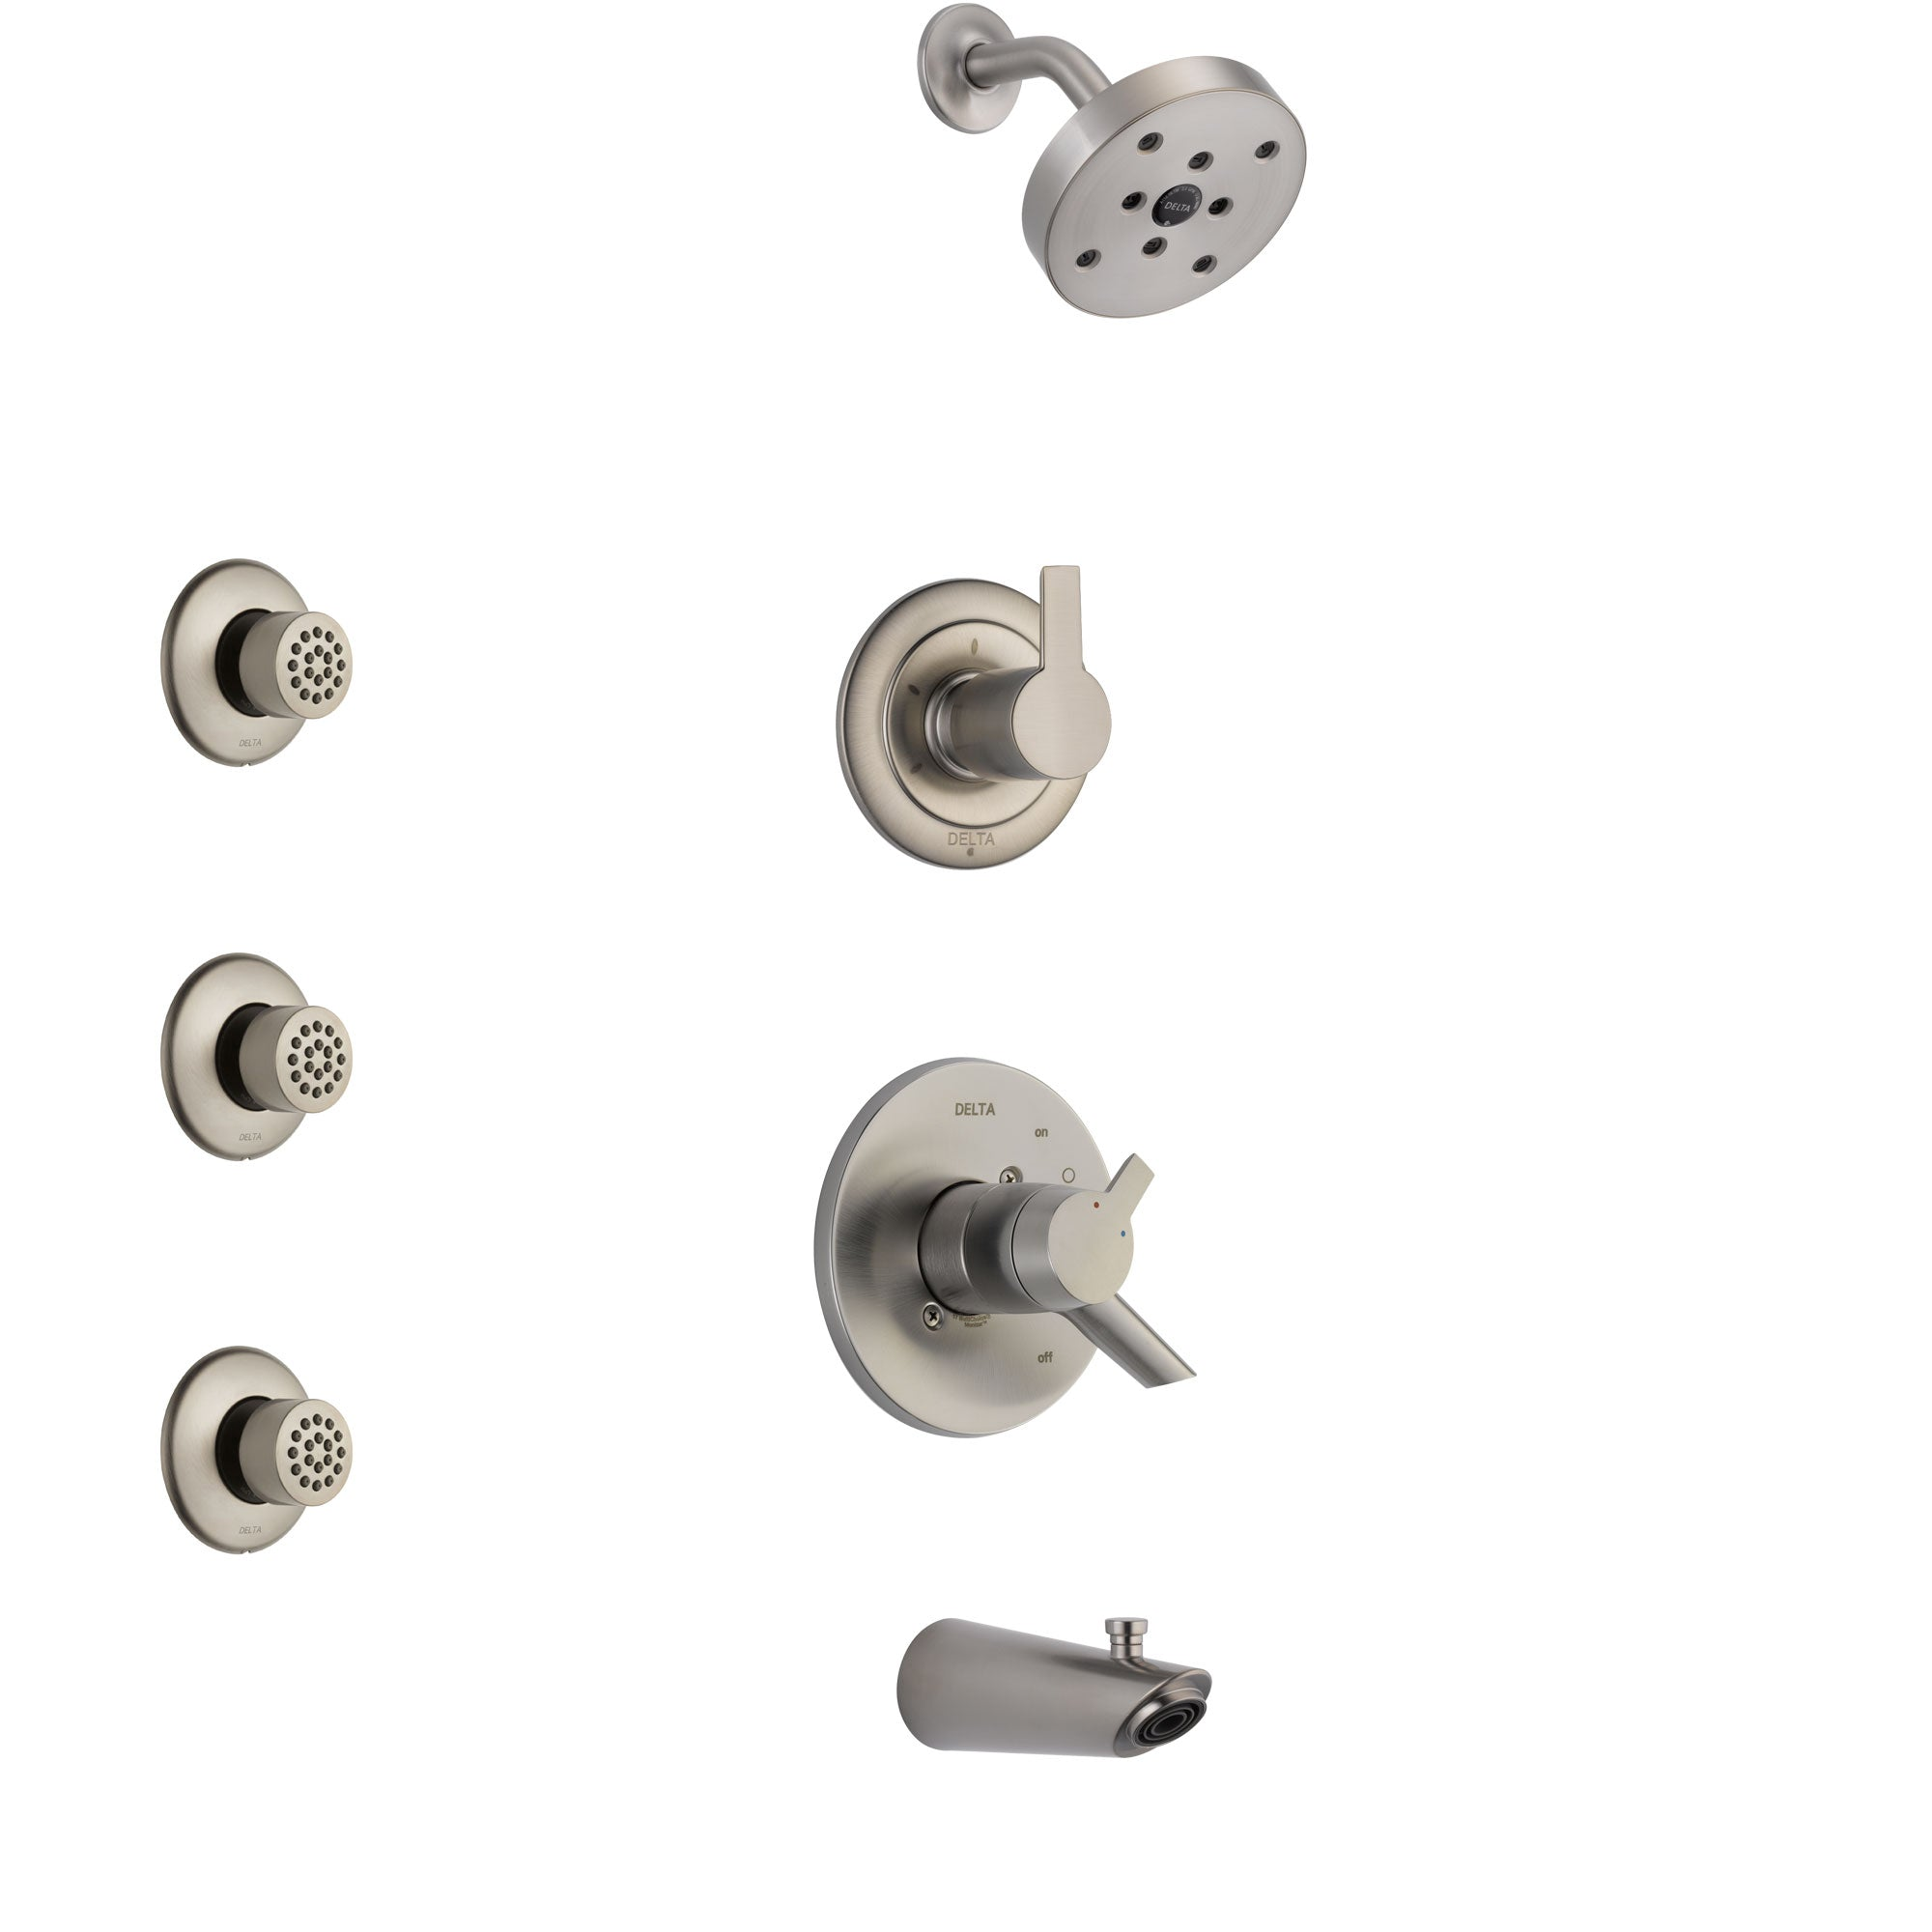 Delta Compel Stainless Steel Finish Tub and Shower System with Dual Control Handle, 3-Setting Diverter, Showerhead, and 3 Body Sprays SS17461SS2